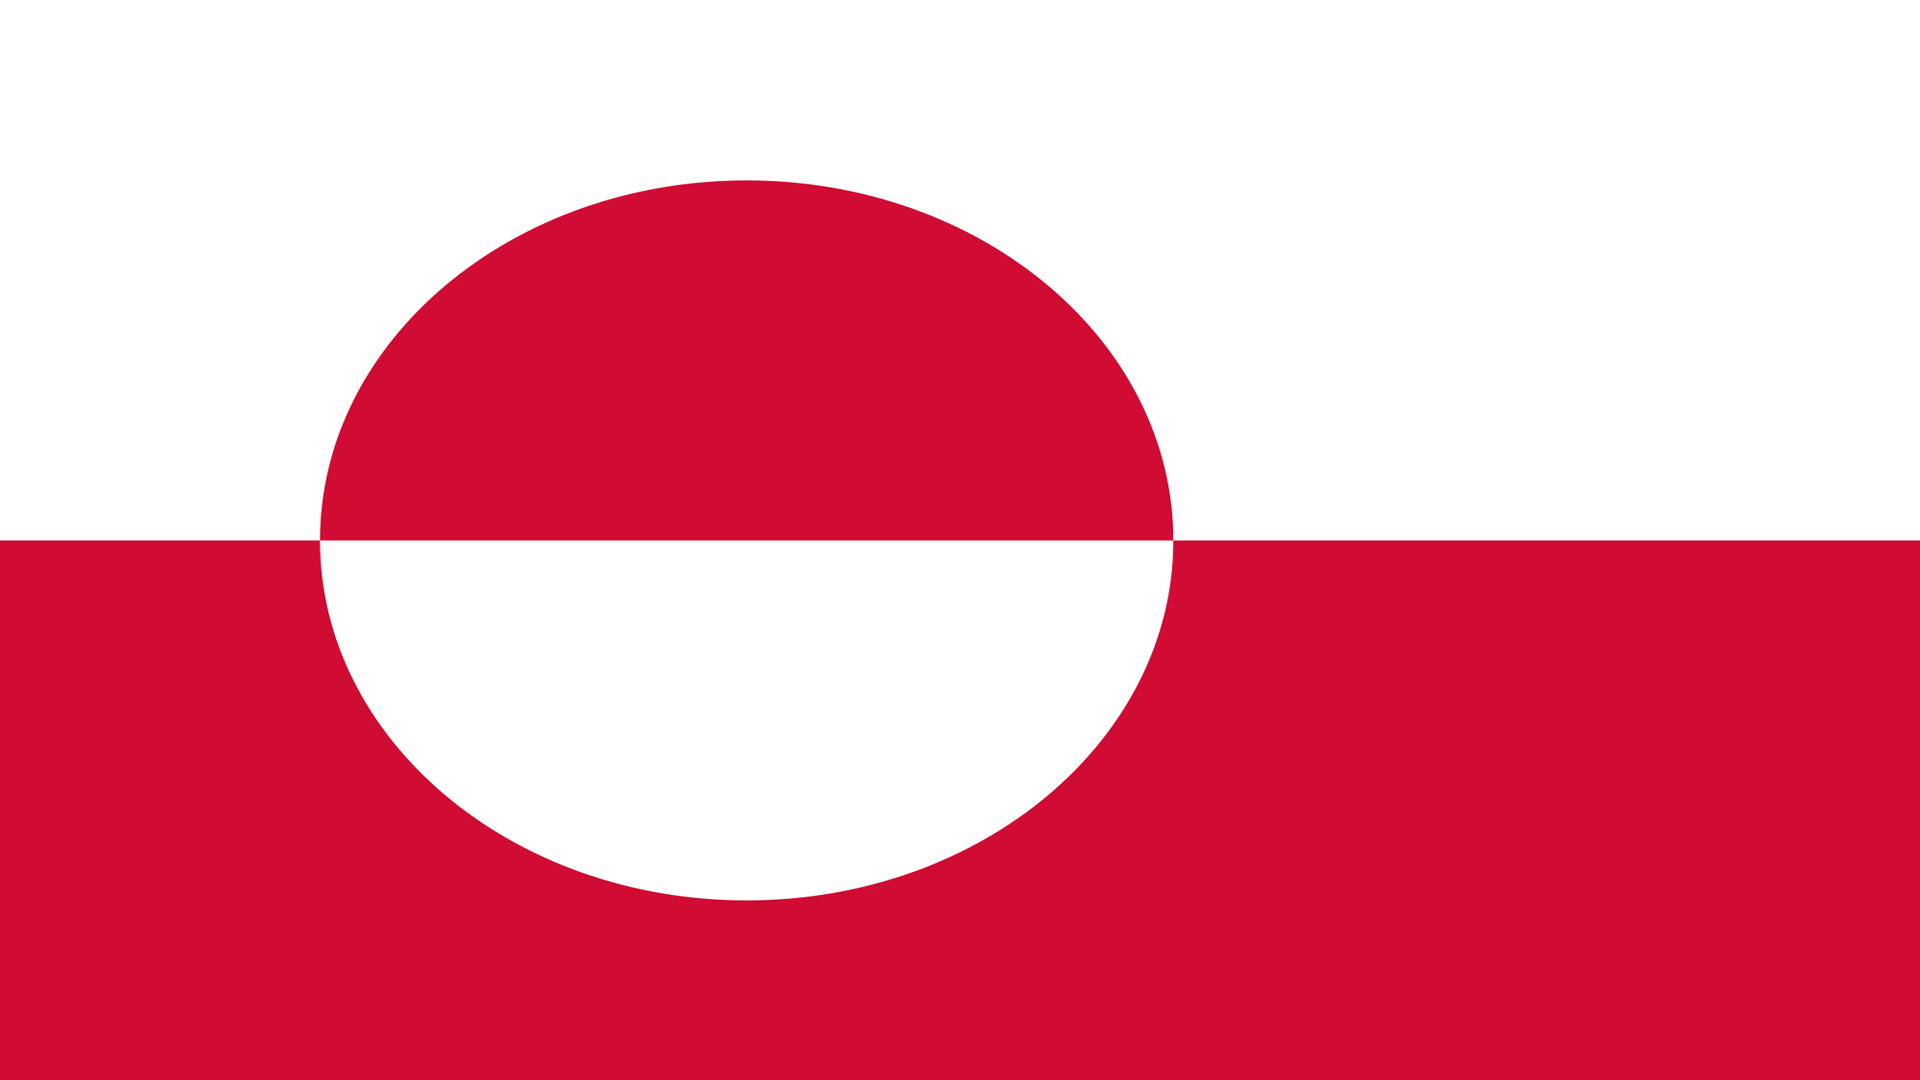 Greenland Flag Wallpaper High Definition High Quality Widescreen